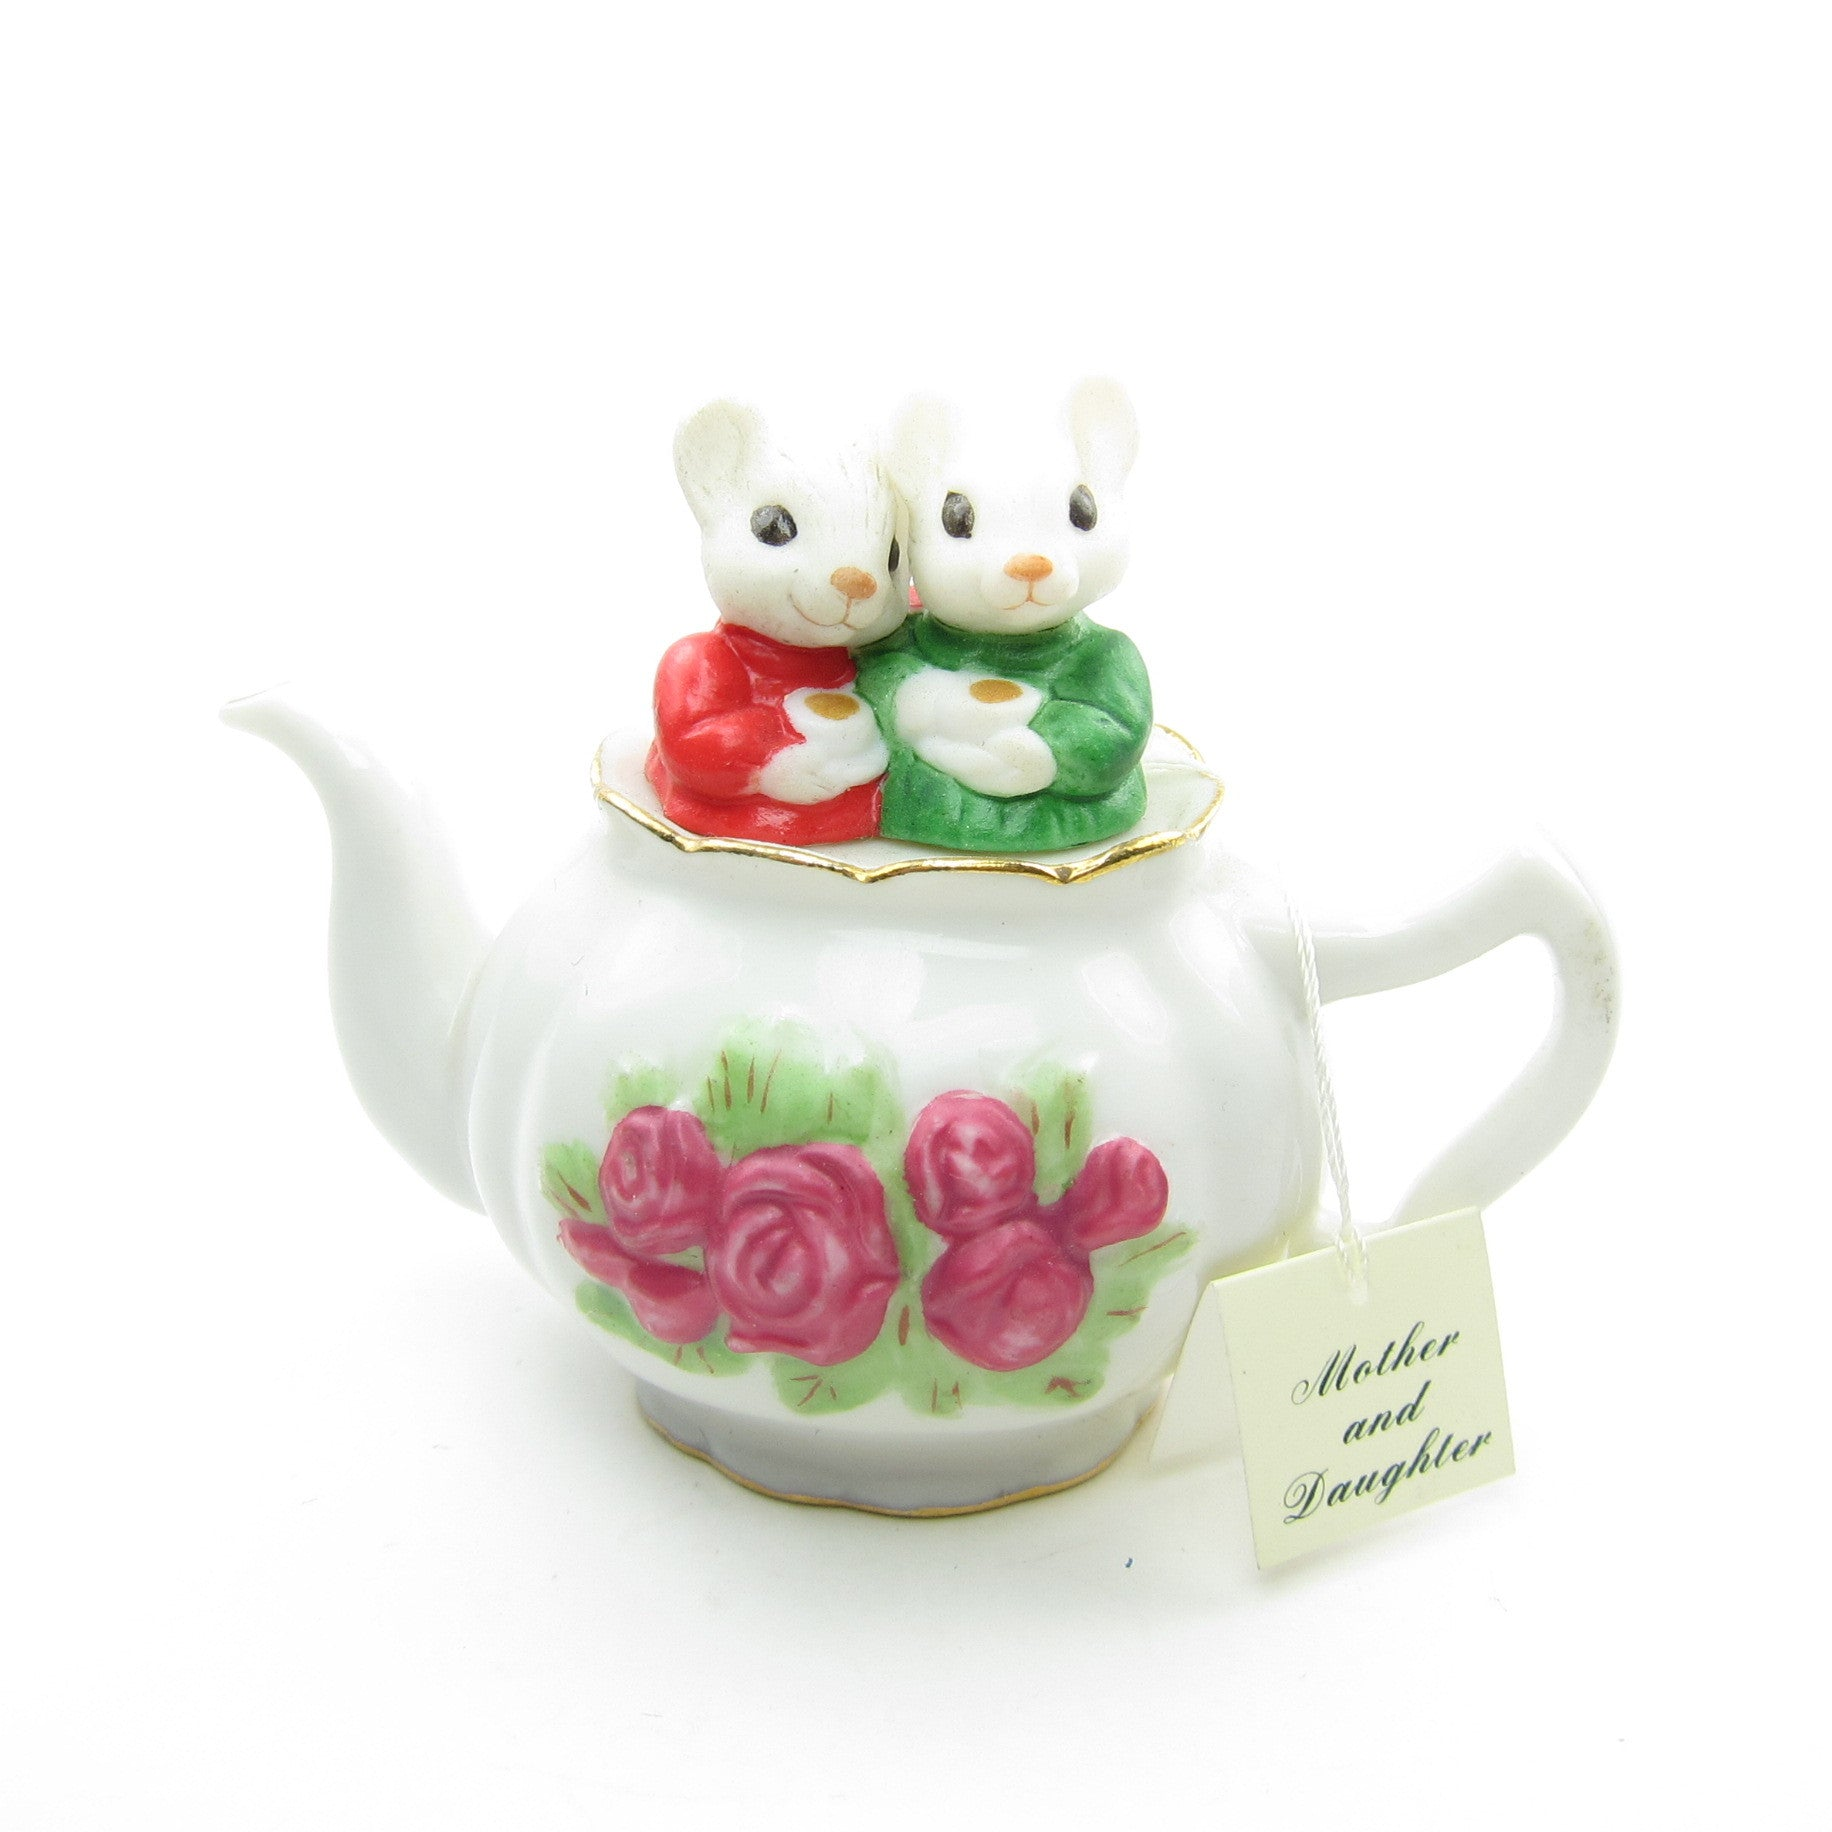 Mother and Daughter mice in tea pot Hallmark ornament